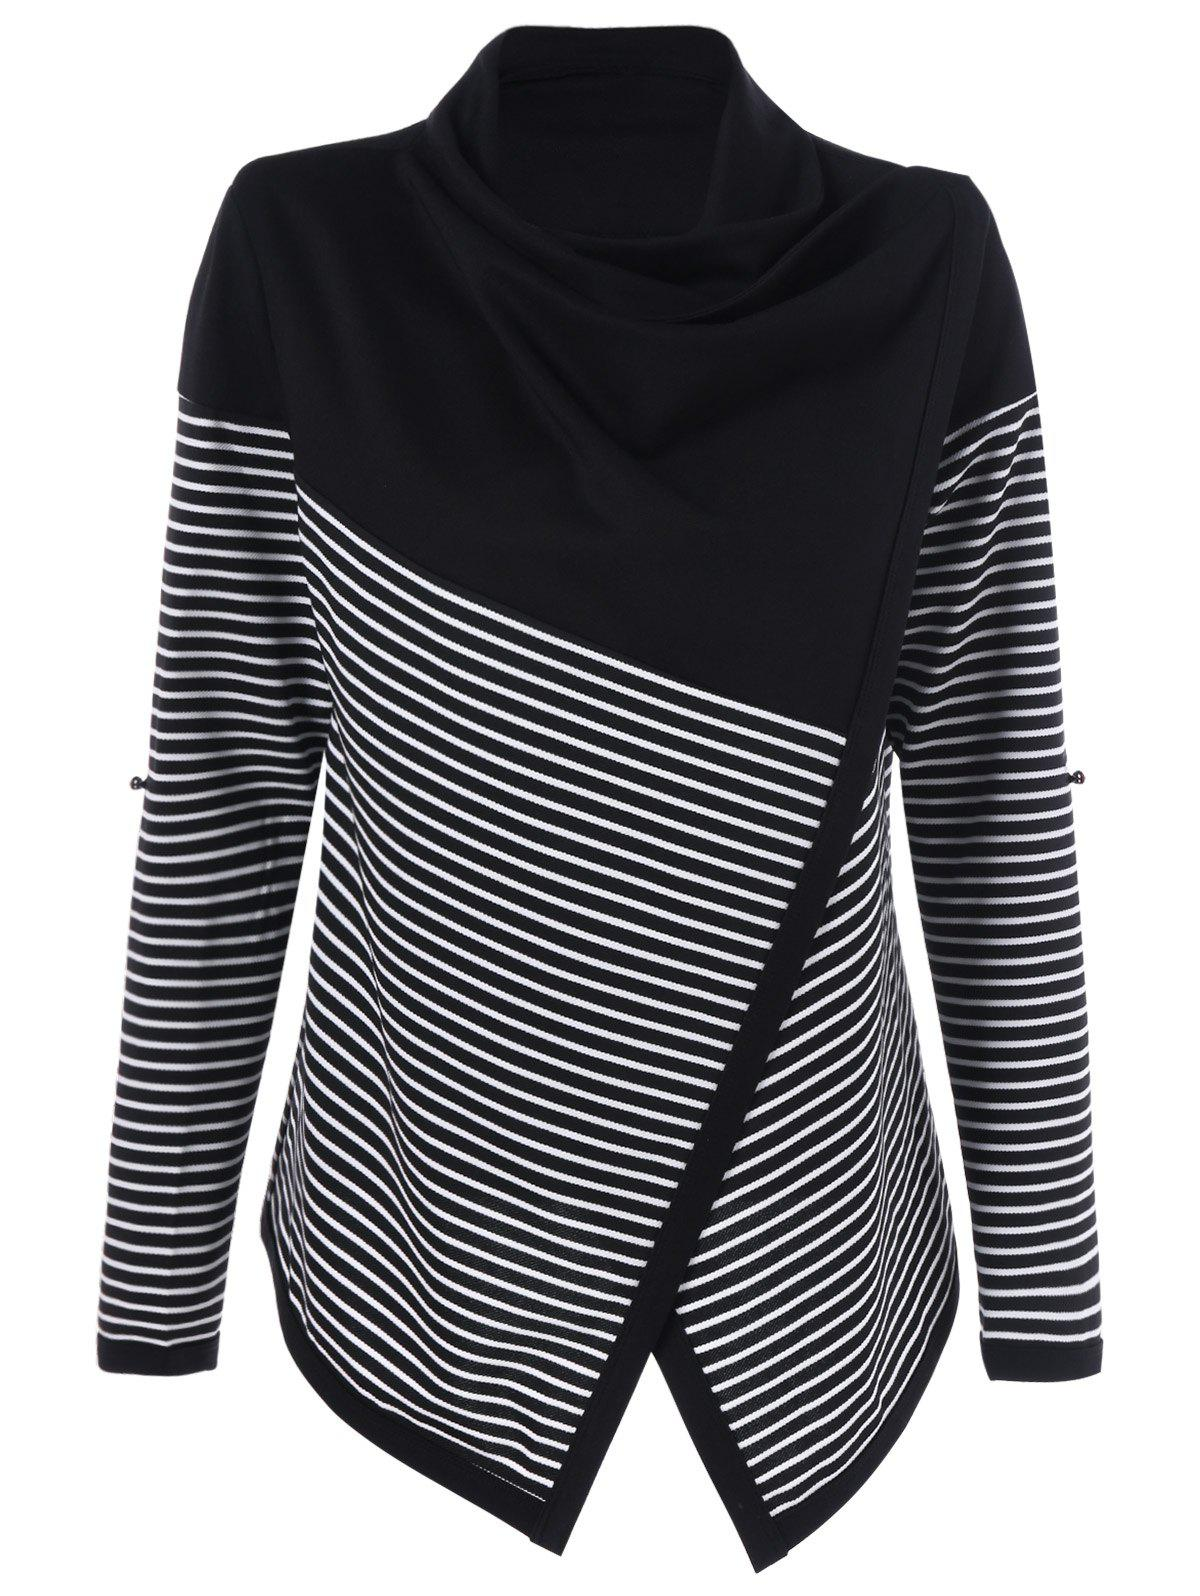 Cowl Neck Surplice Striped KnitwearWOMEN<br><br>Size: M; Color: STRIPE; Type: Pullovers; Material: Polyester,Spandex; Sleeve Length: Full; Collar: Cowl Neck; Style: Fashion; Pattern Type: Striped; Season: Fall,Spring,Winter; Weight: 0.370kg; Package Contents: 1 x Knitwear;